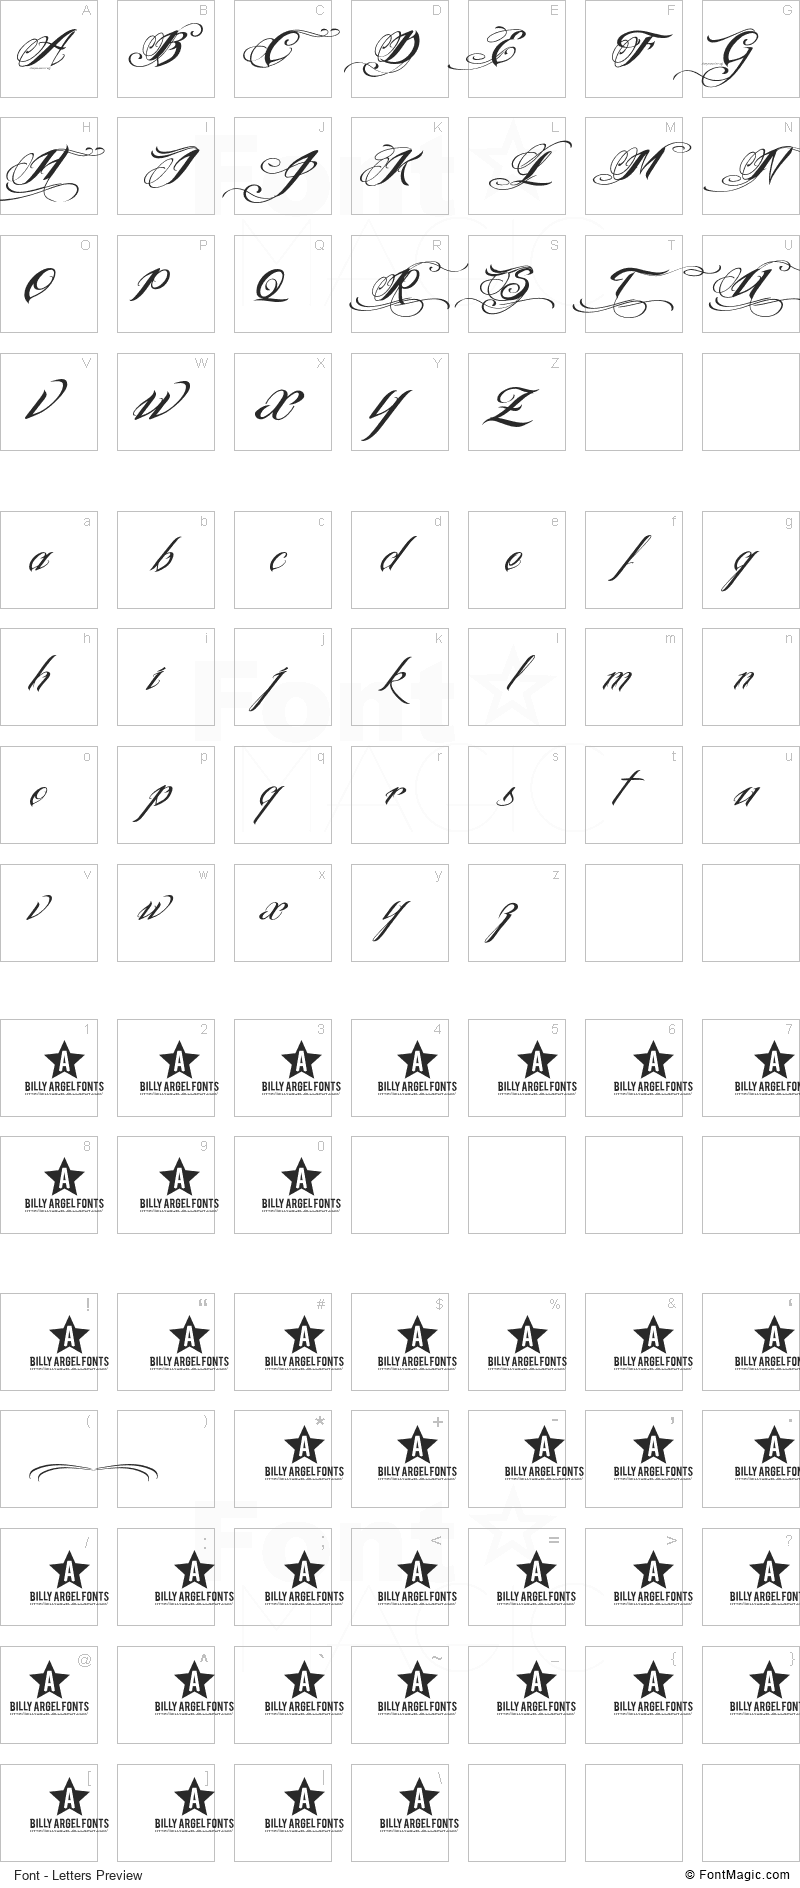 Ink In The Meat Font - All Latters Preview Chart